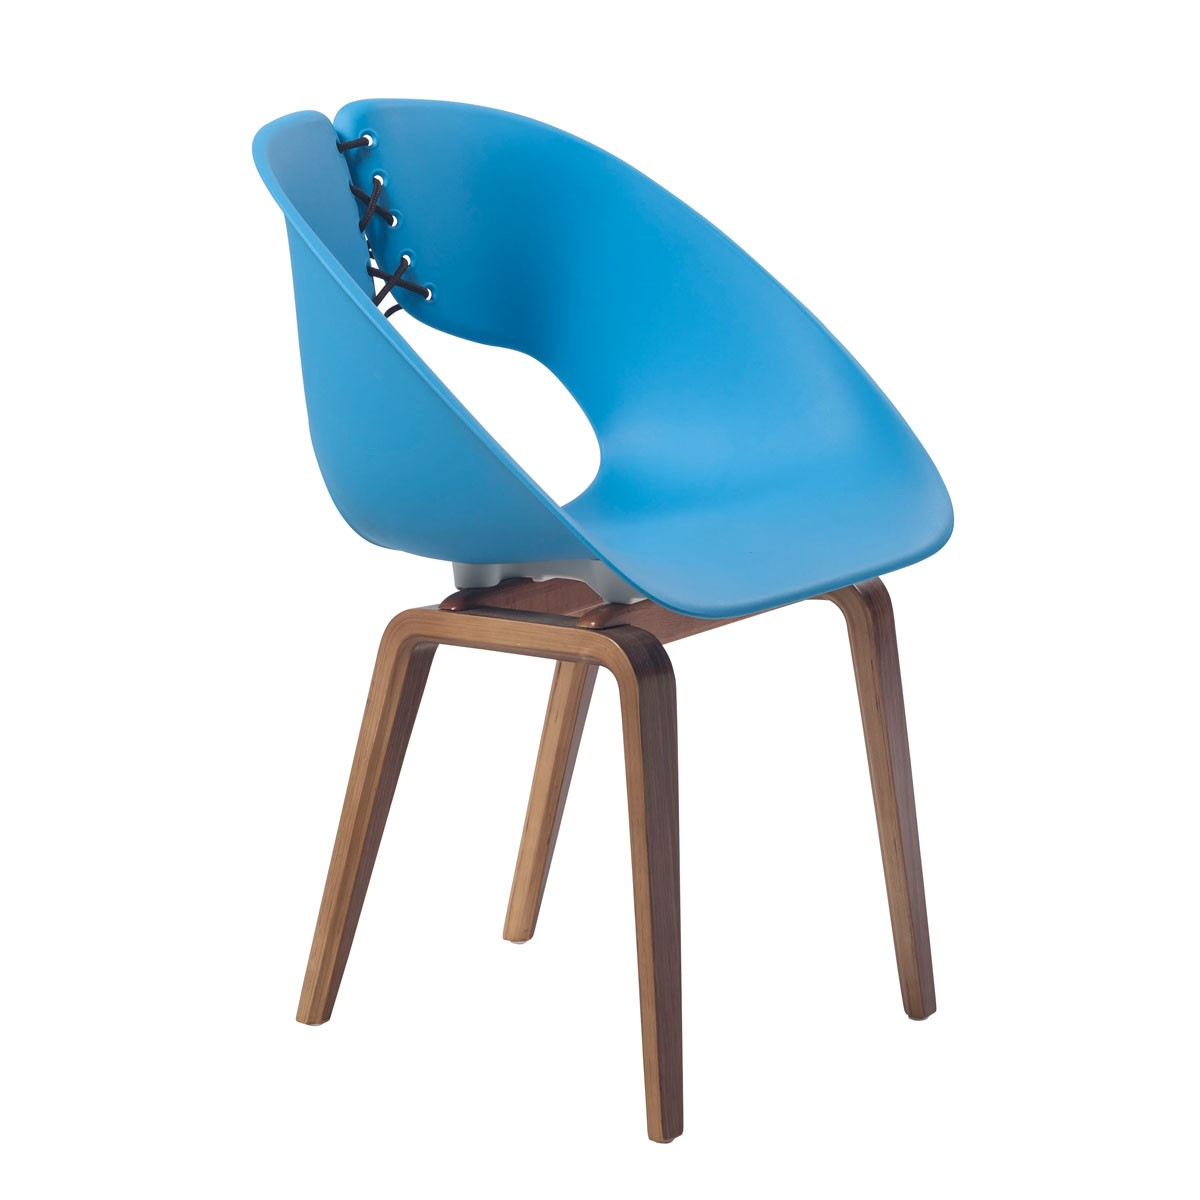 Molded Plastic Chair in Blue with Wood Legs - (YMG-9303B)